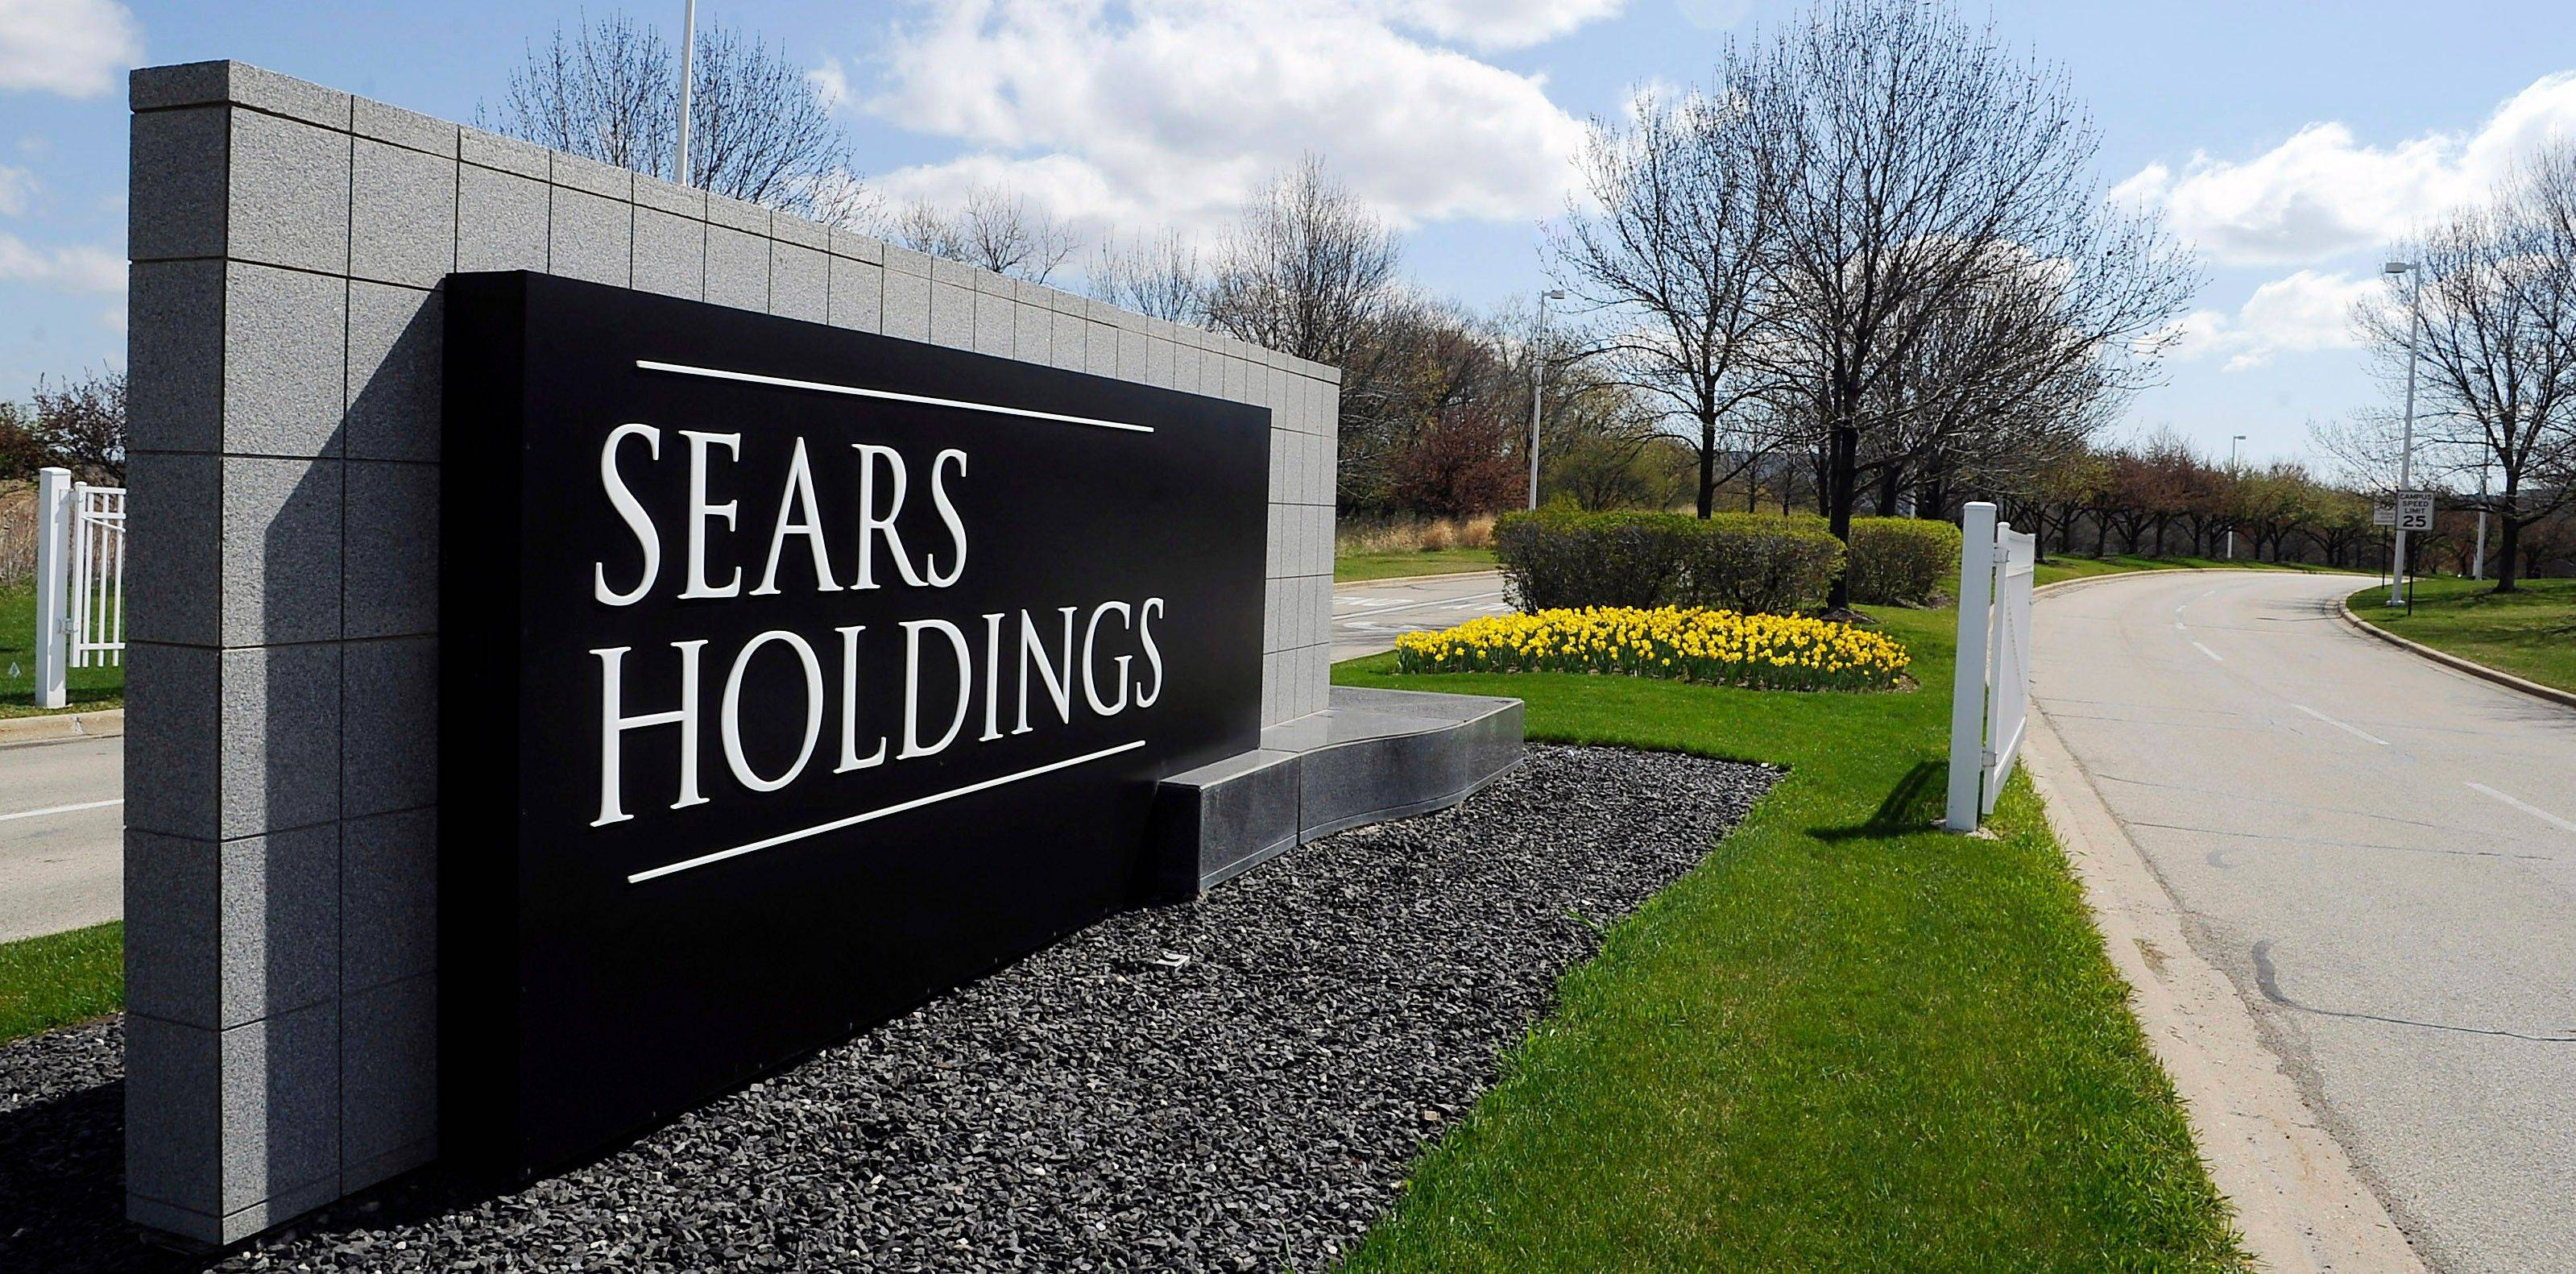 Sears, headquartered in Hoffman Estates, is narrowing its search for possible relocation out of Illinois, but the company is using the discussions as leverage to sweeten the incentives to stay in Illinois, according to the head of a retail leasing company.